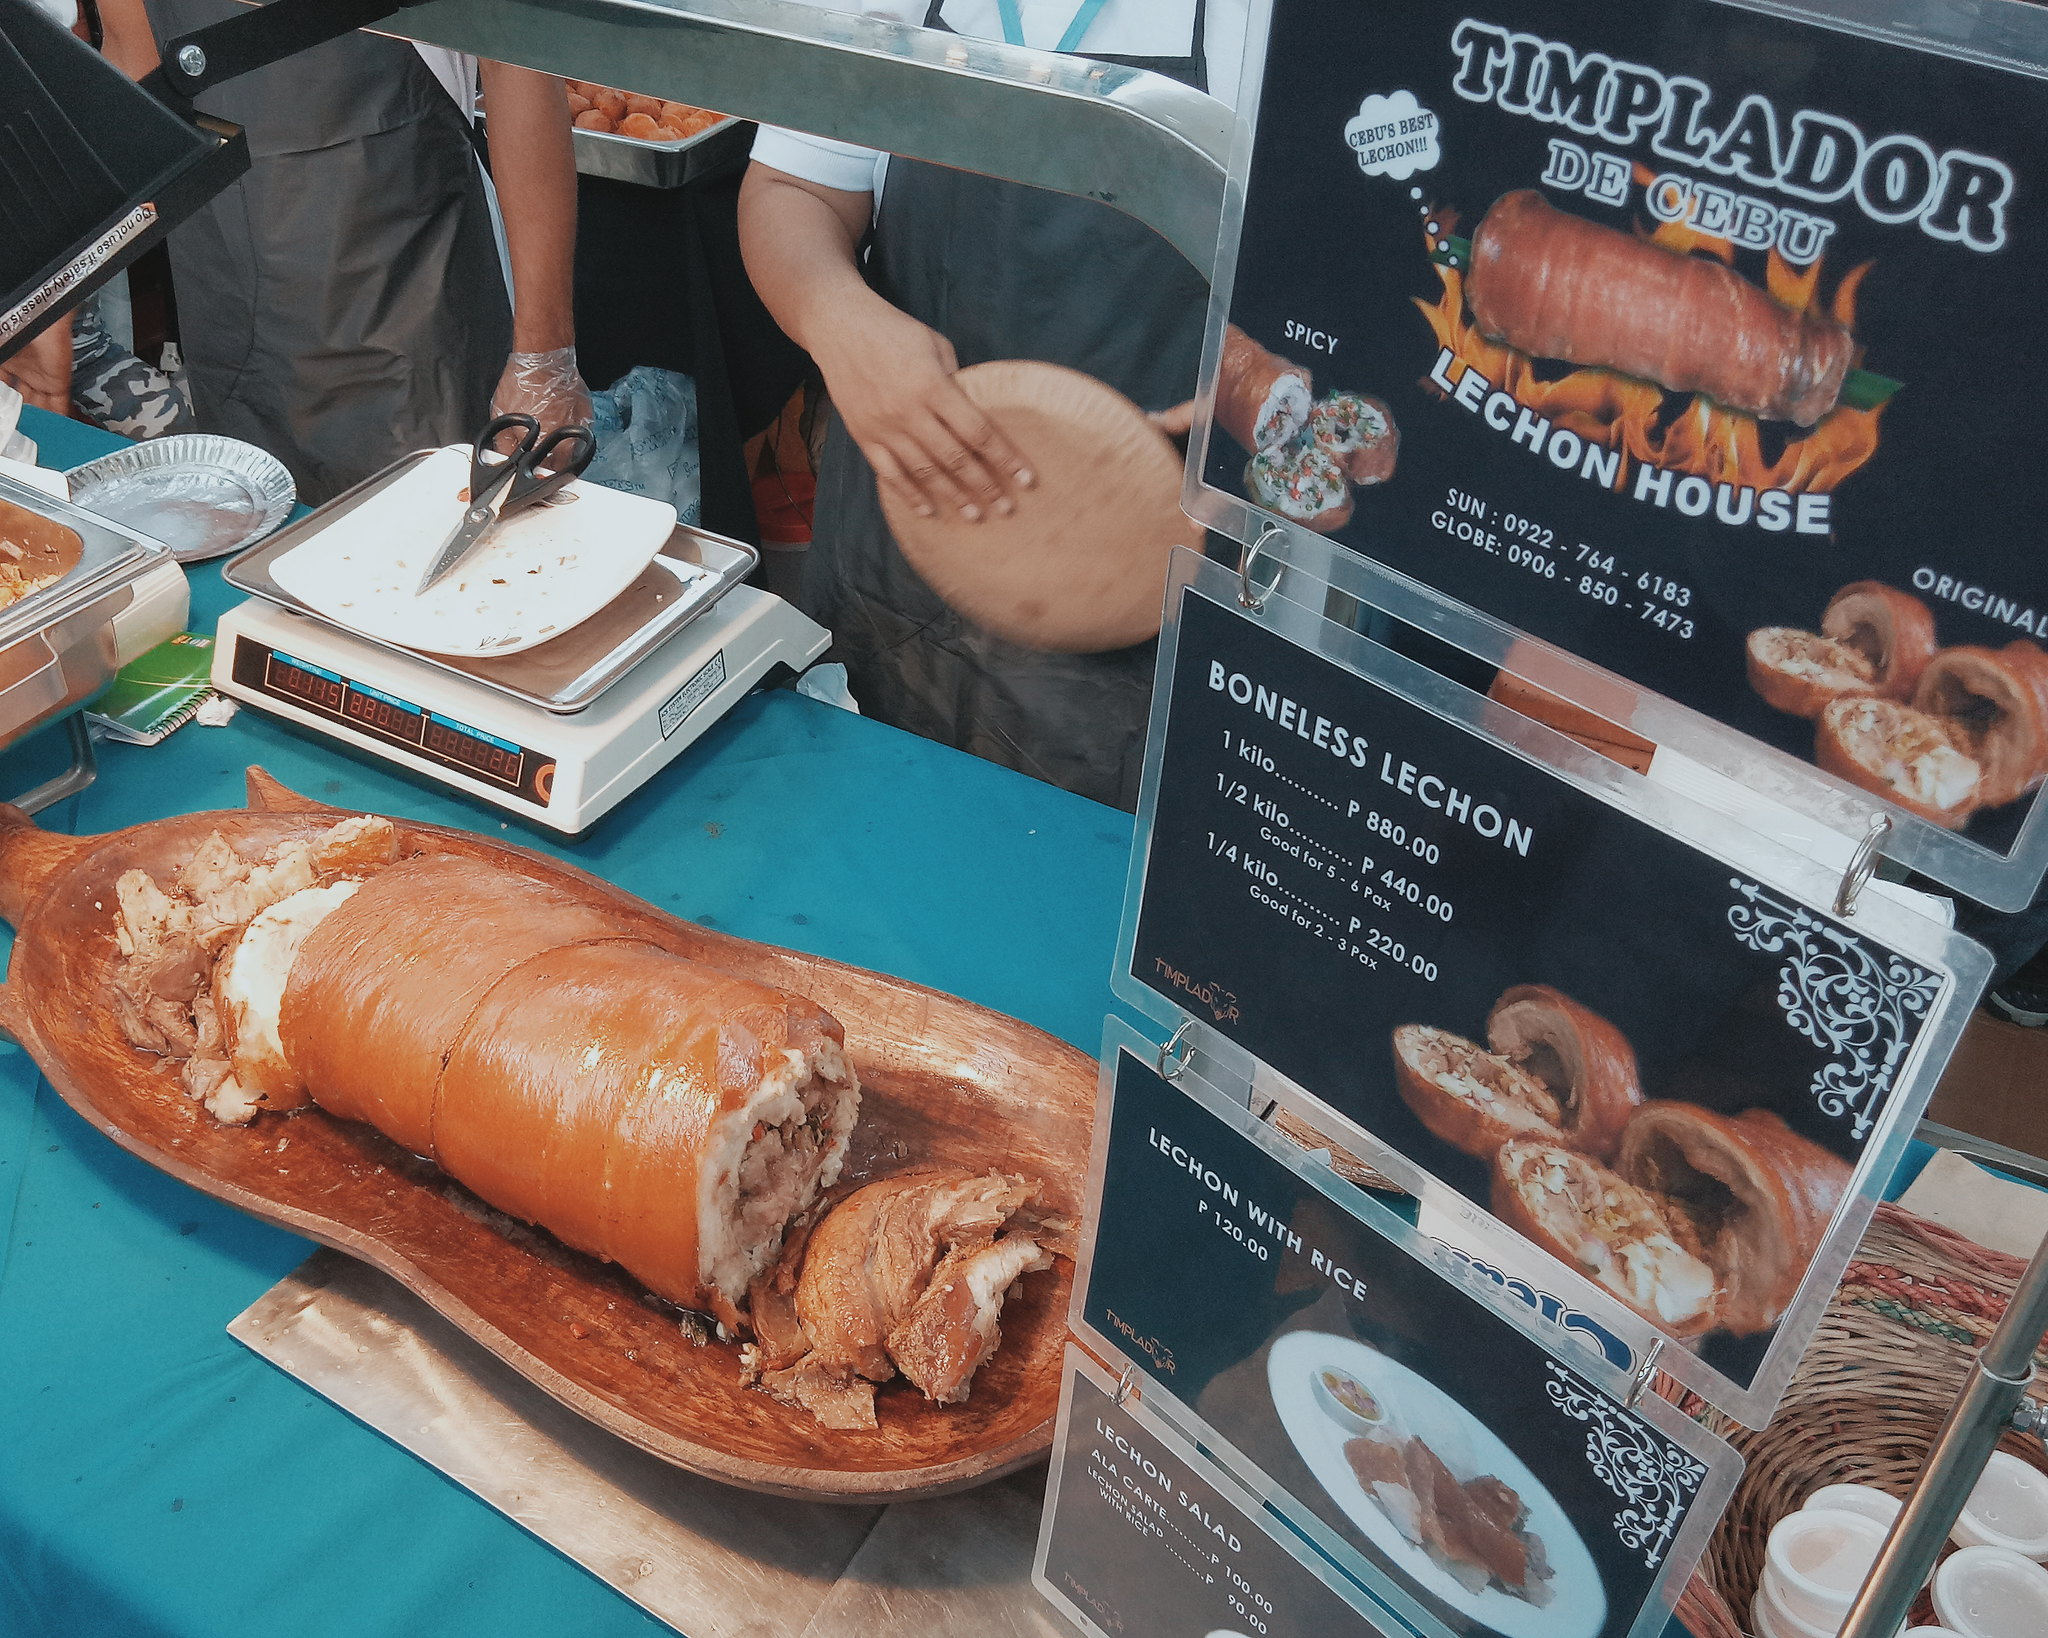 The SM Hypermart Street Food Festival 2017 #SMFF2017